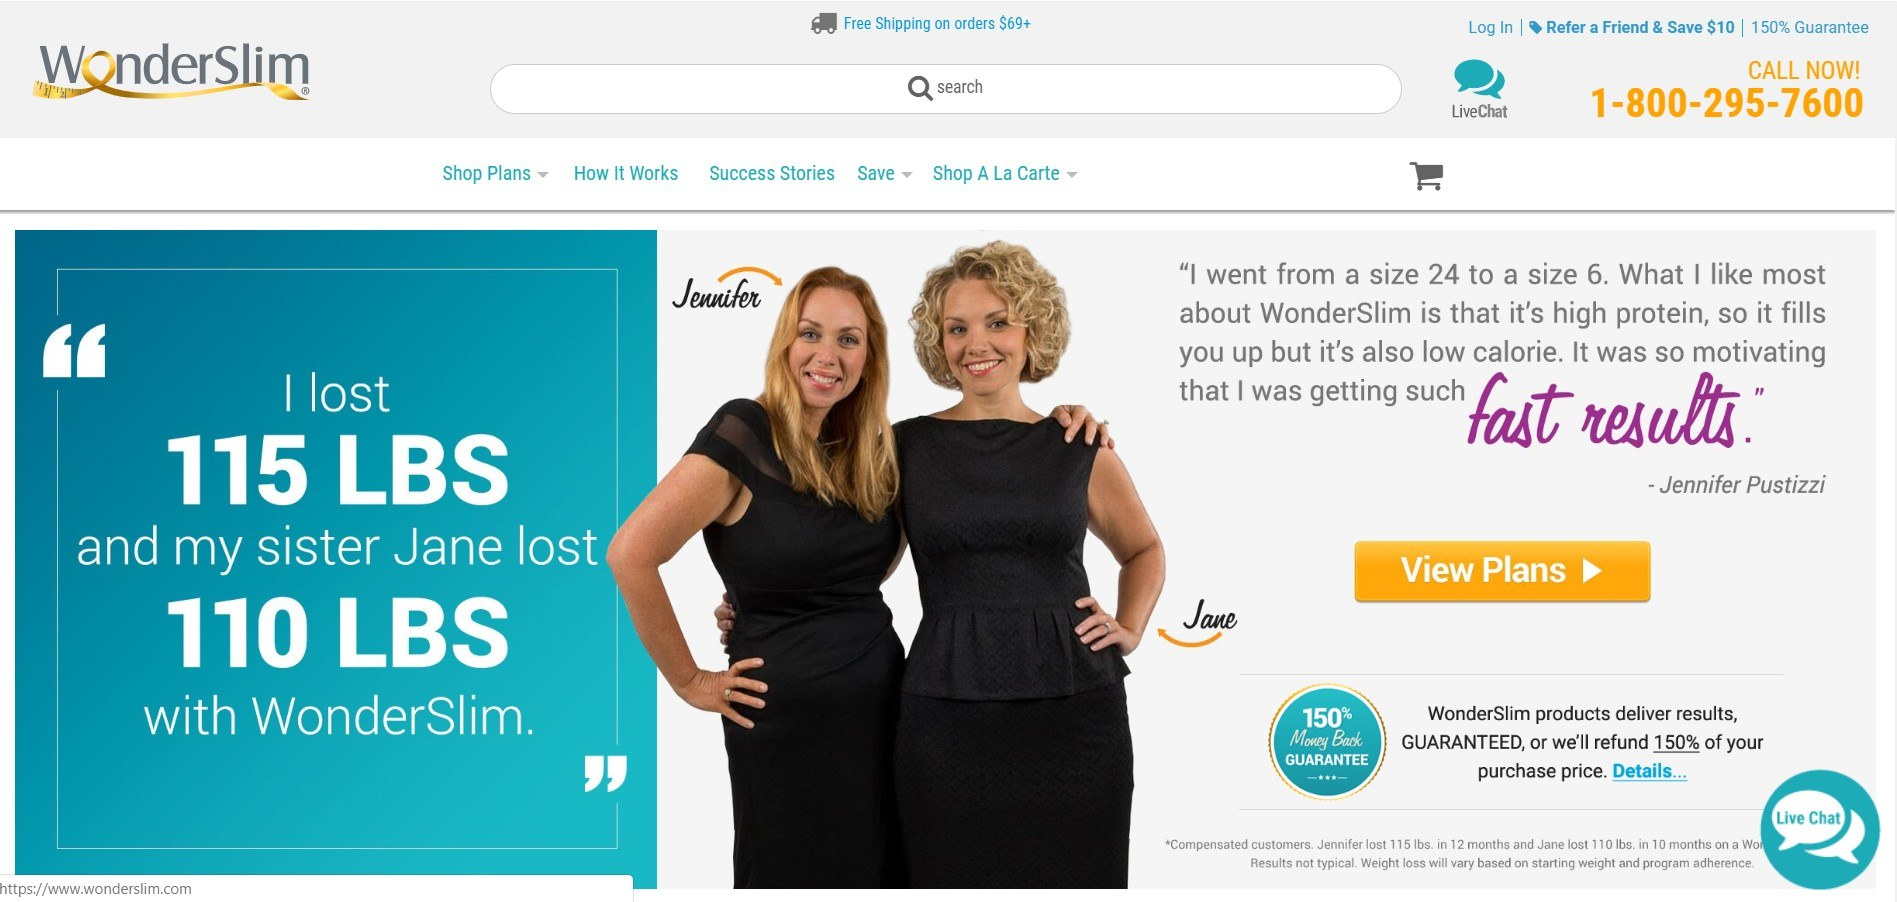 This screenshot includes an image of two sisters wearing black who both lost several pounds using the Wonderslim meal replacements.